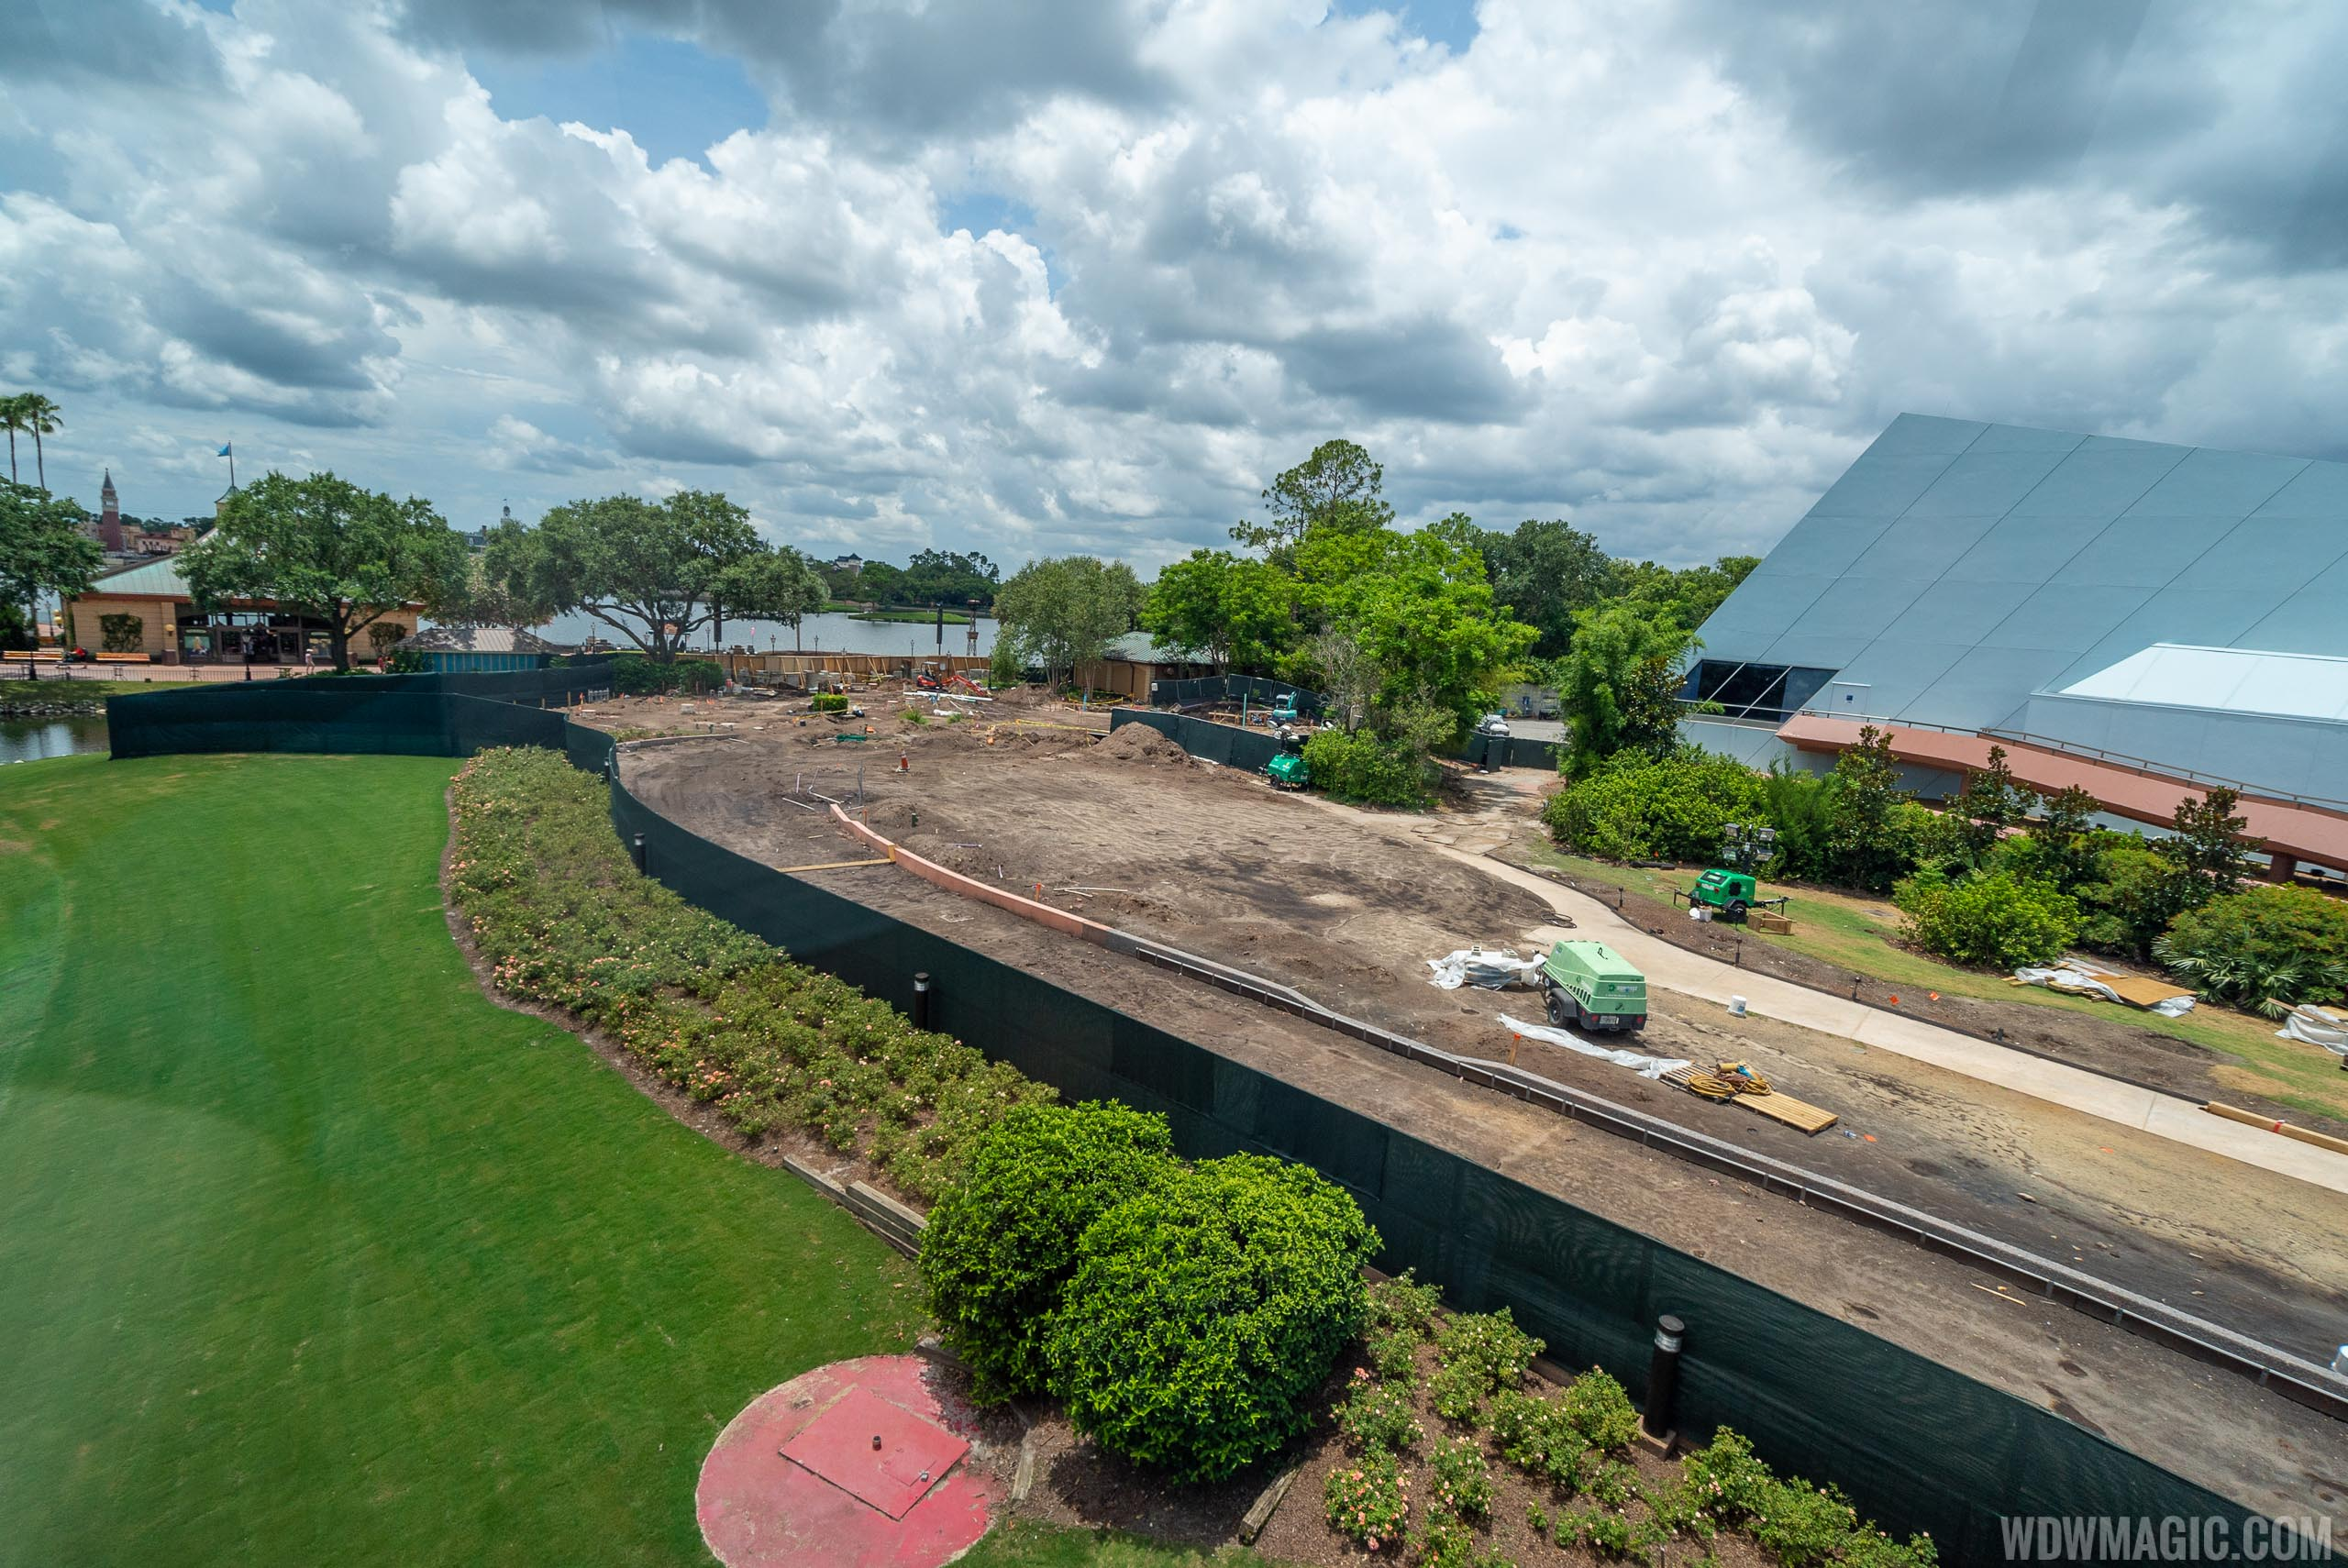 Epcot Rosewalk widening construction - July 2019